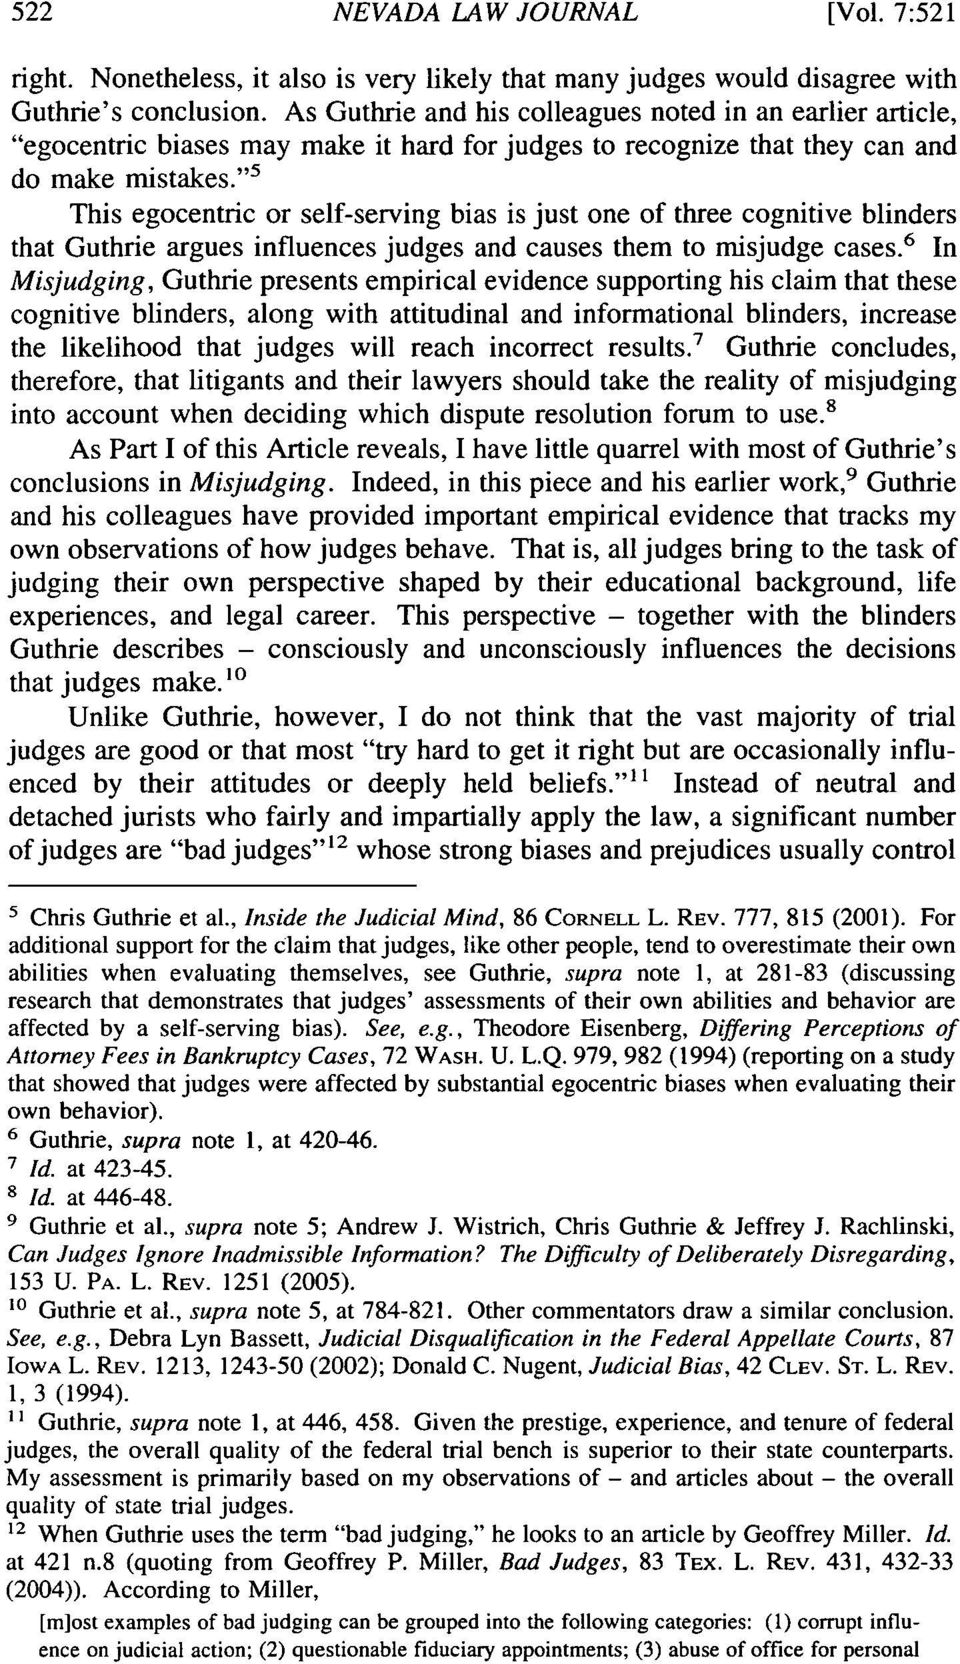 """ 5 This egocentric or self-serving bias is just one of three cognitive blinders that Guthrie argues influences judges and causes them to misjudge cases."